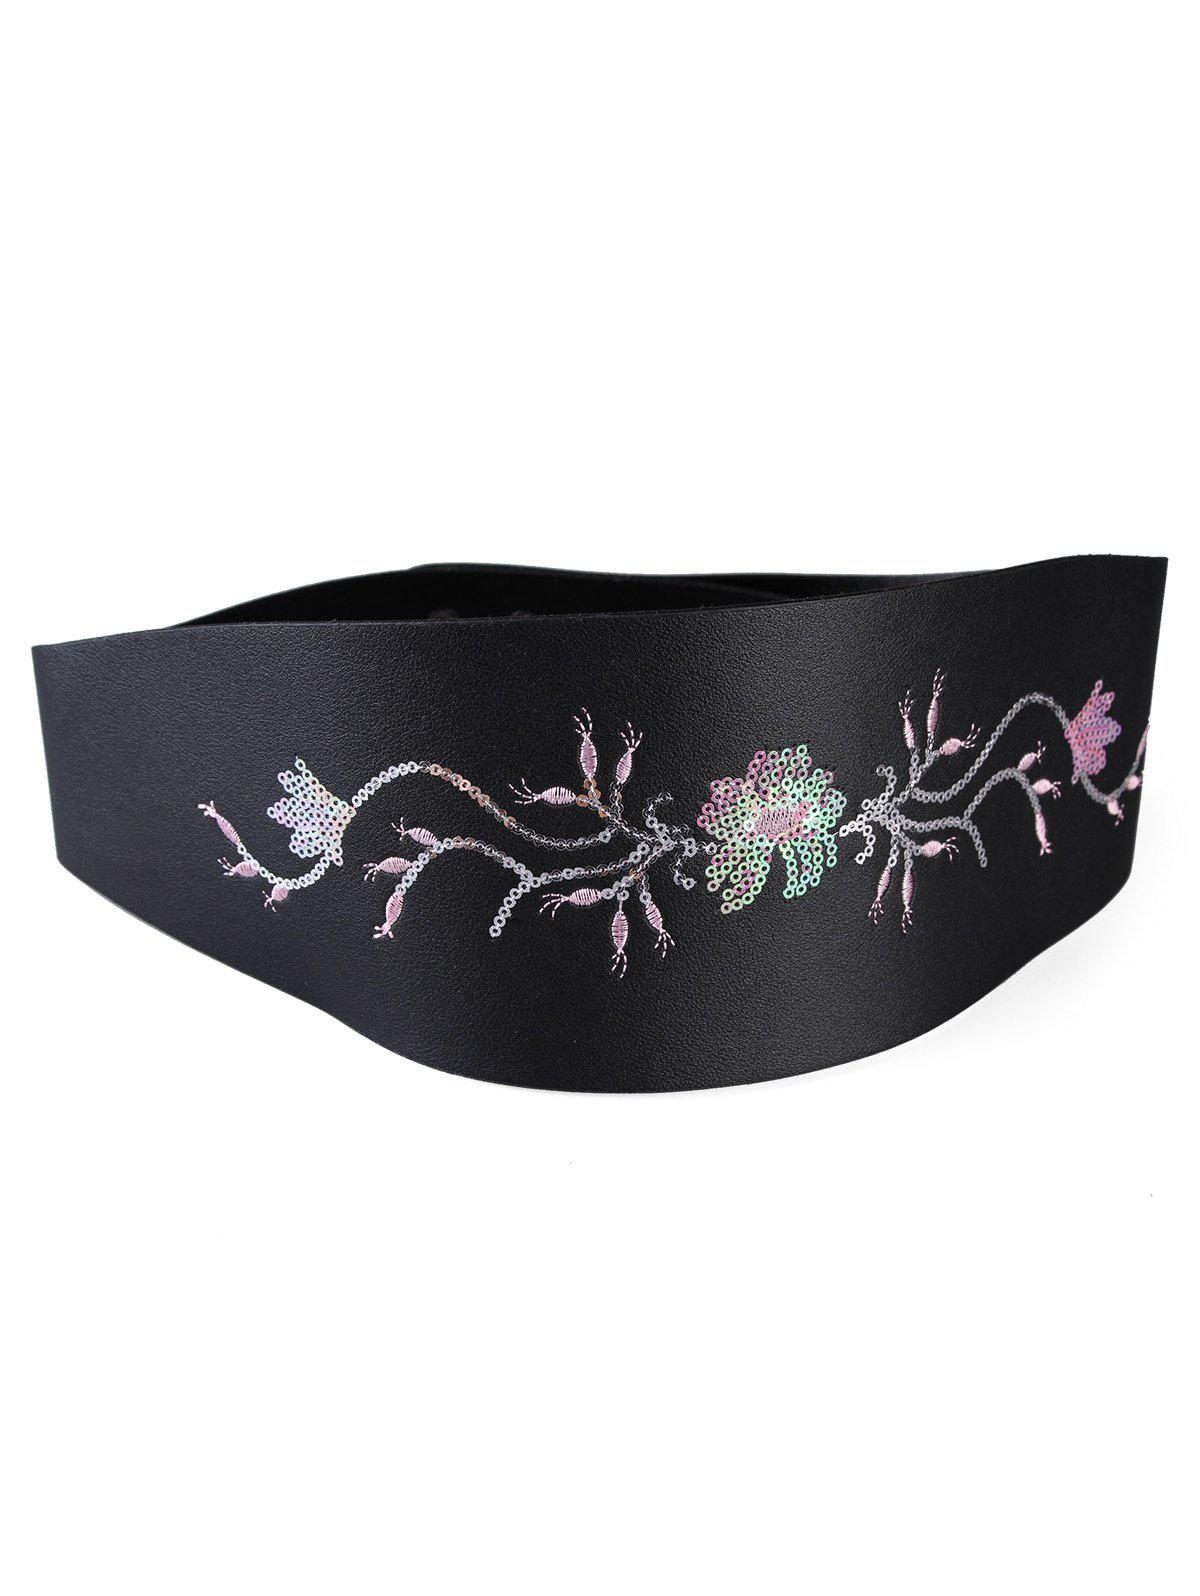 Retro Floral Sequins Decorative High Waist Belt - BLACK